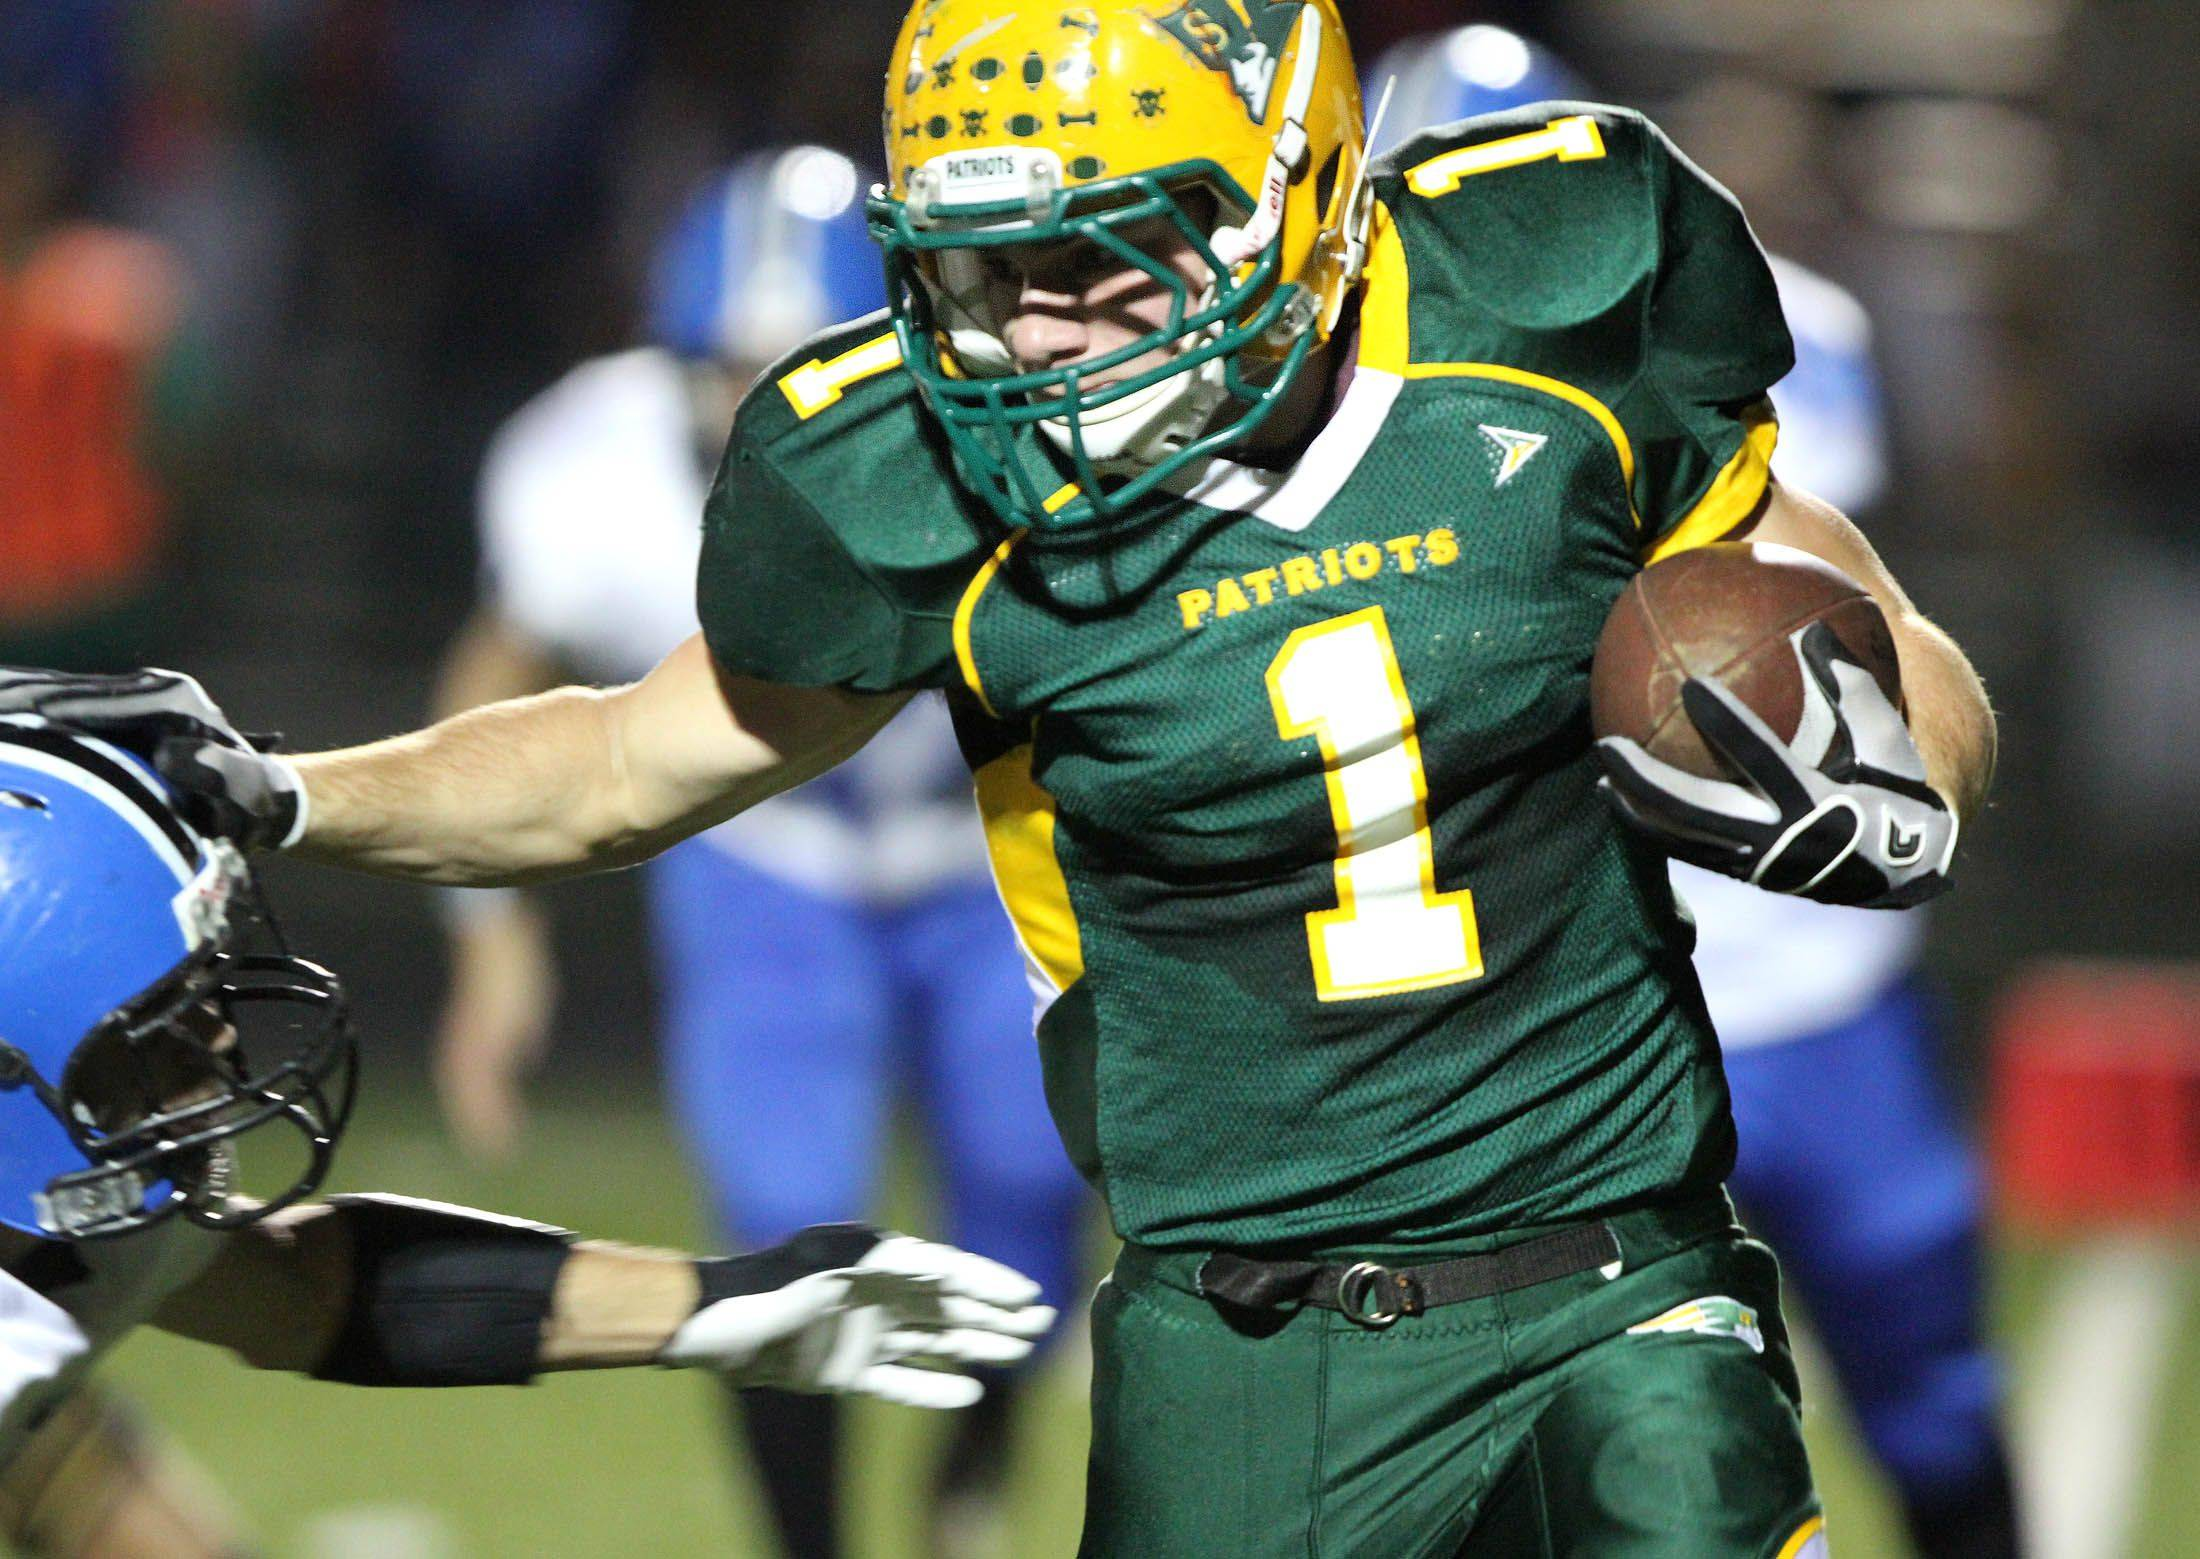 Stevenson's Kevin Foley runs the ball against Lake Zurich at Stevenson on Thursday, October 6th.